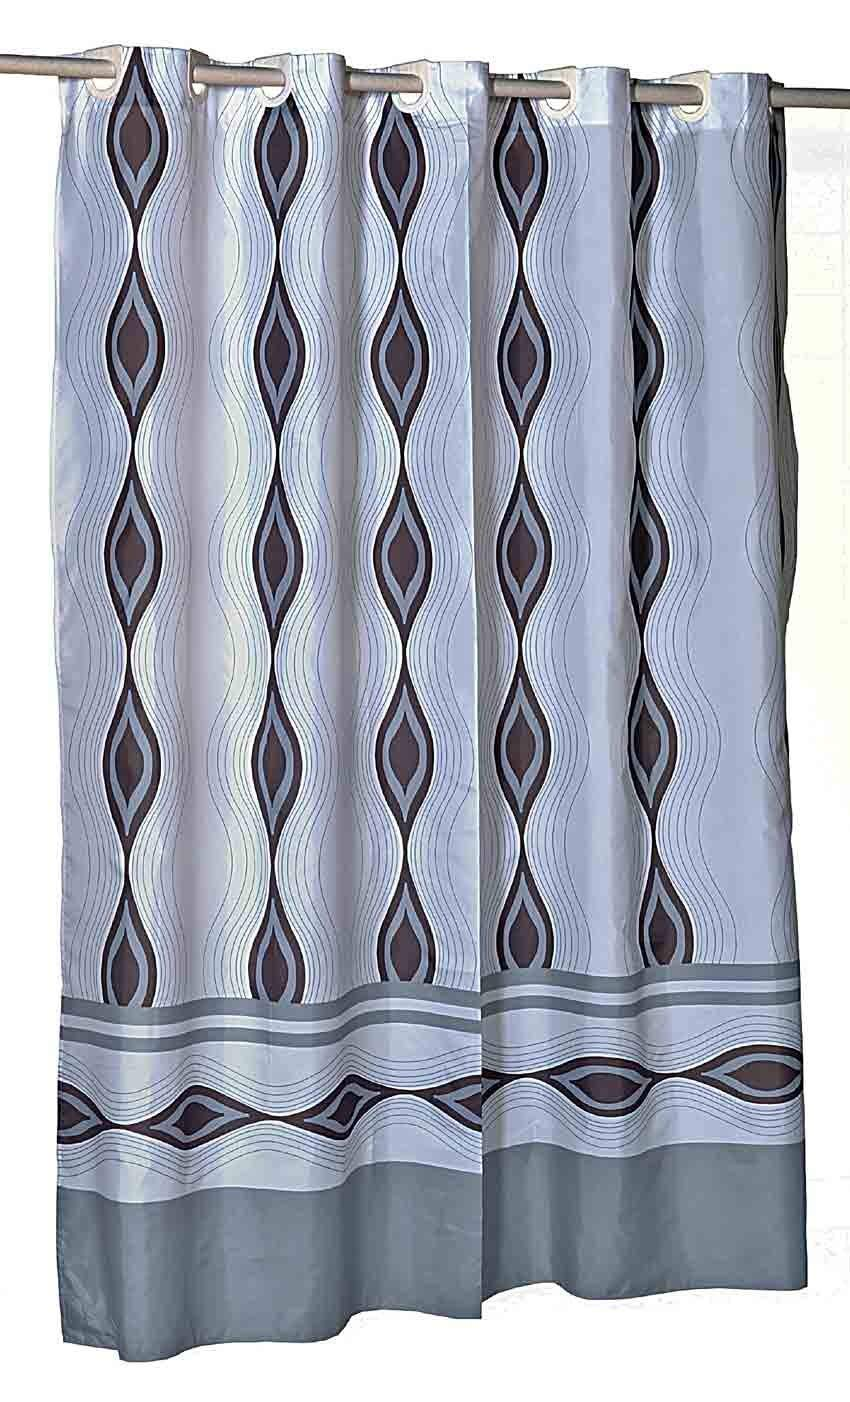 108 Long Shower Curtain Cheap 108 Shower Curtain Find 108 Shower Curtain Deals On Line At